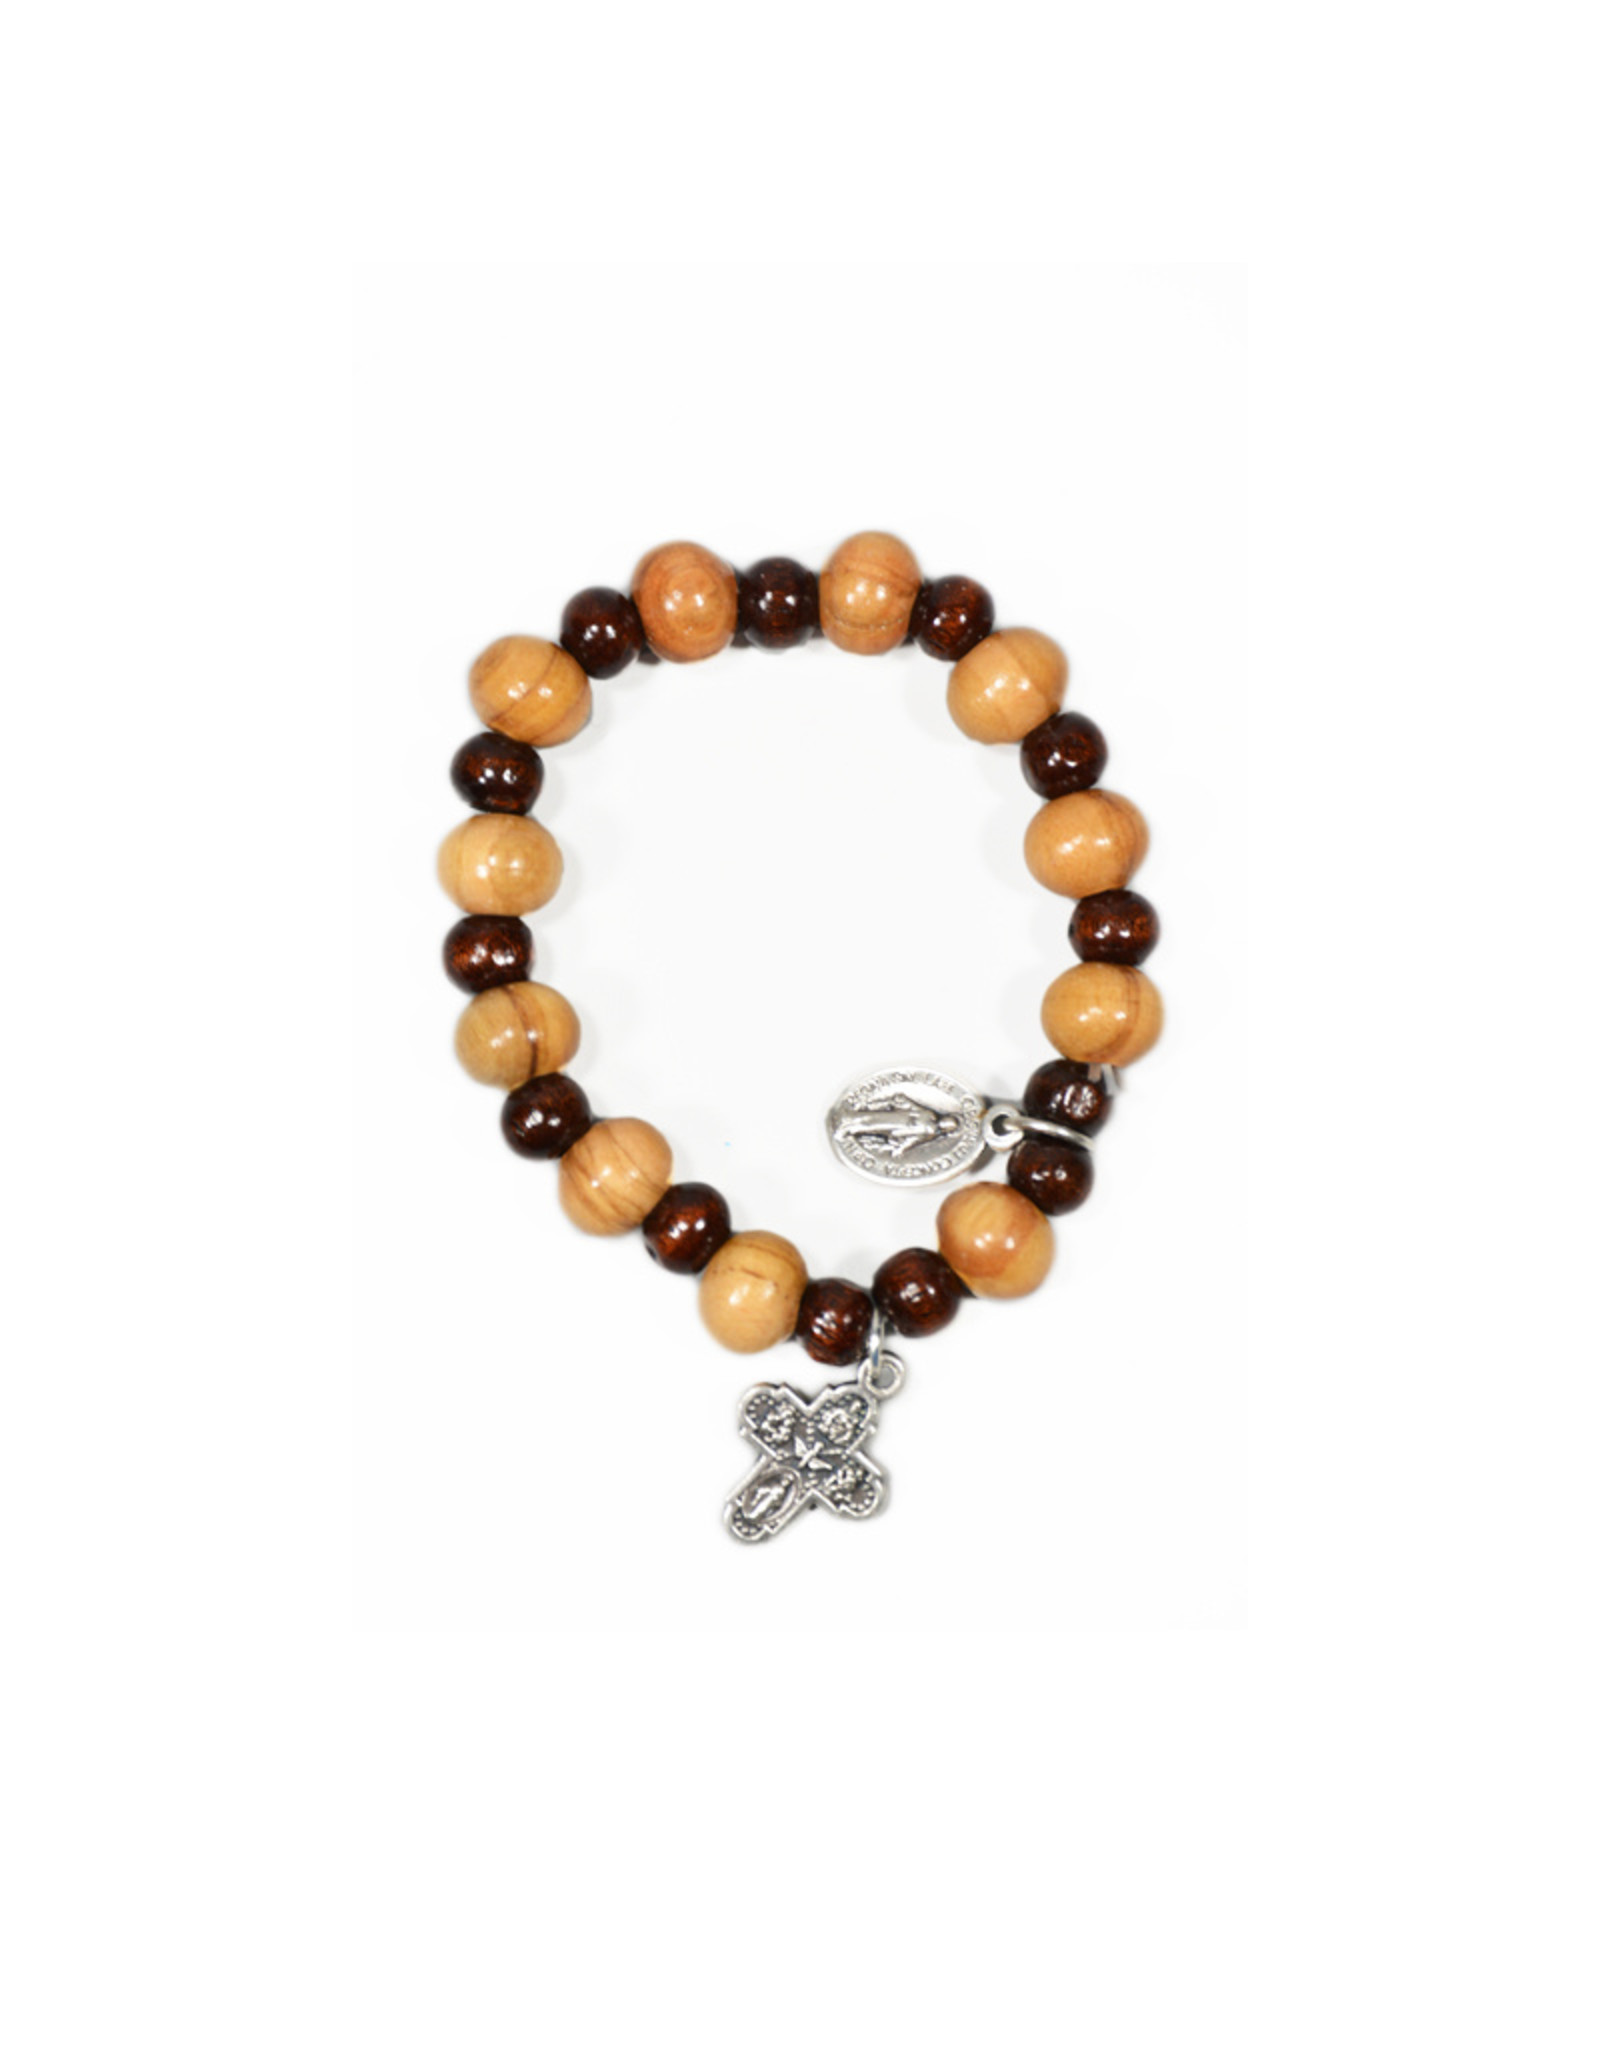 Two-tone olive wood bracelet with cross and medal